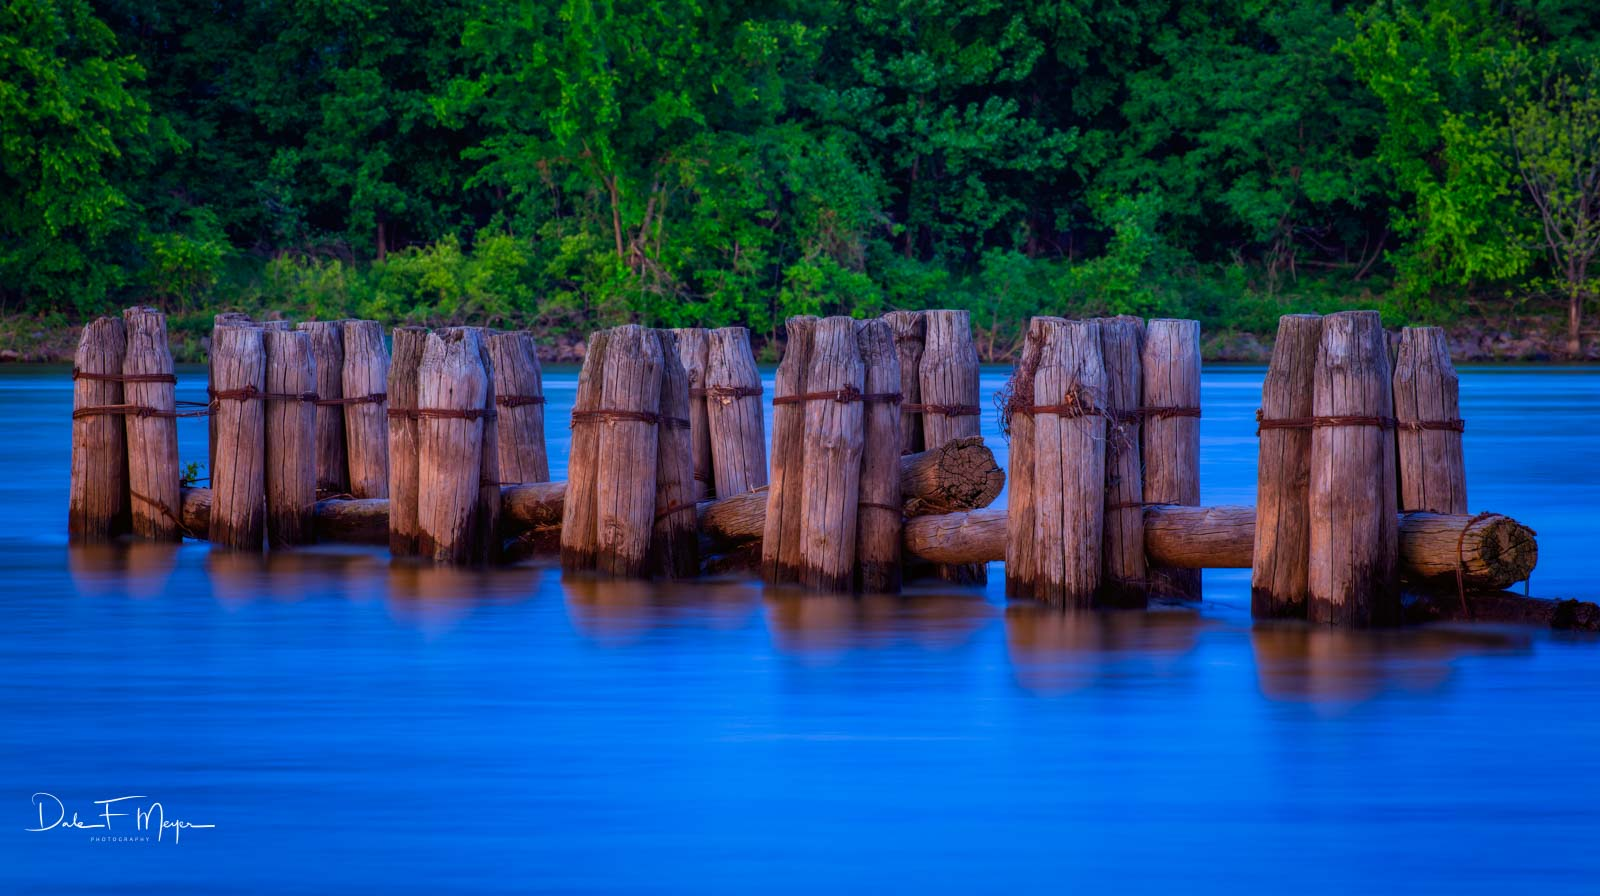 Dardanelle Arkansas River Piers, Old wooden Piers, Spring 2016, high water, time gone by gallerie, photo